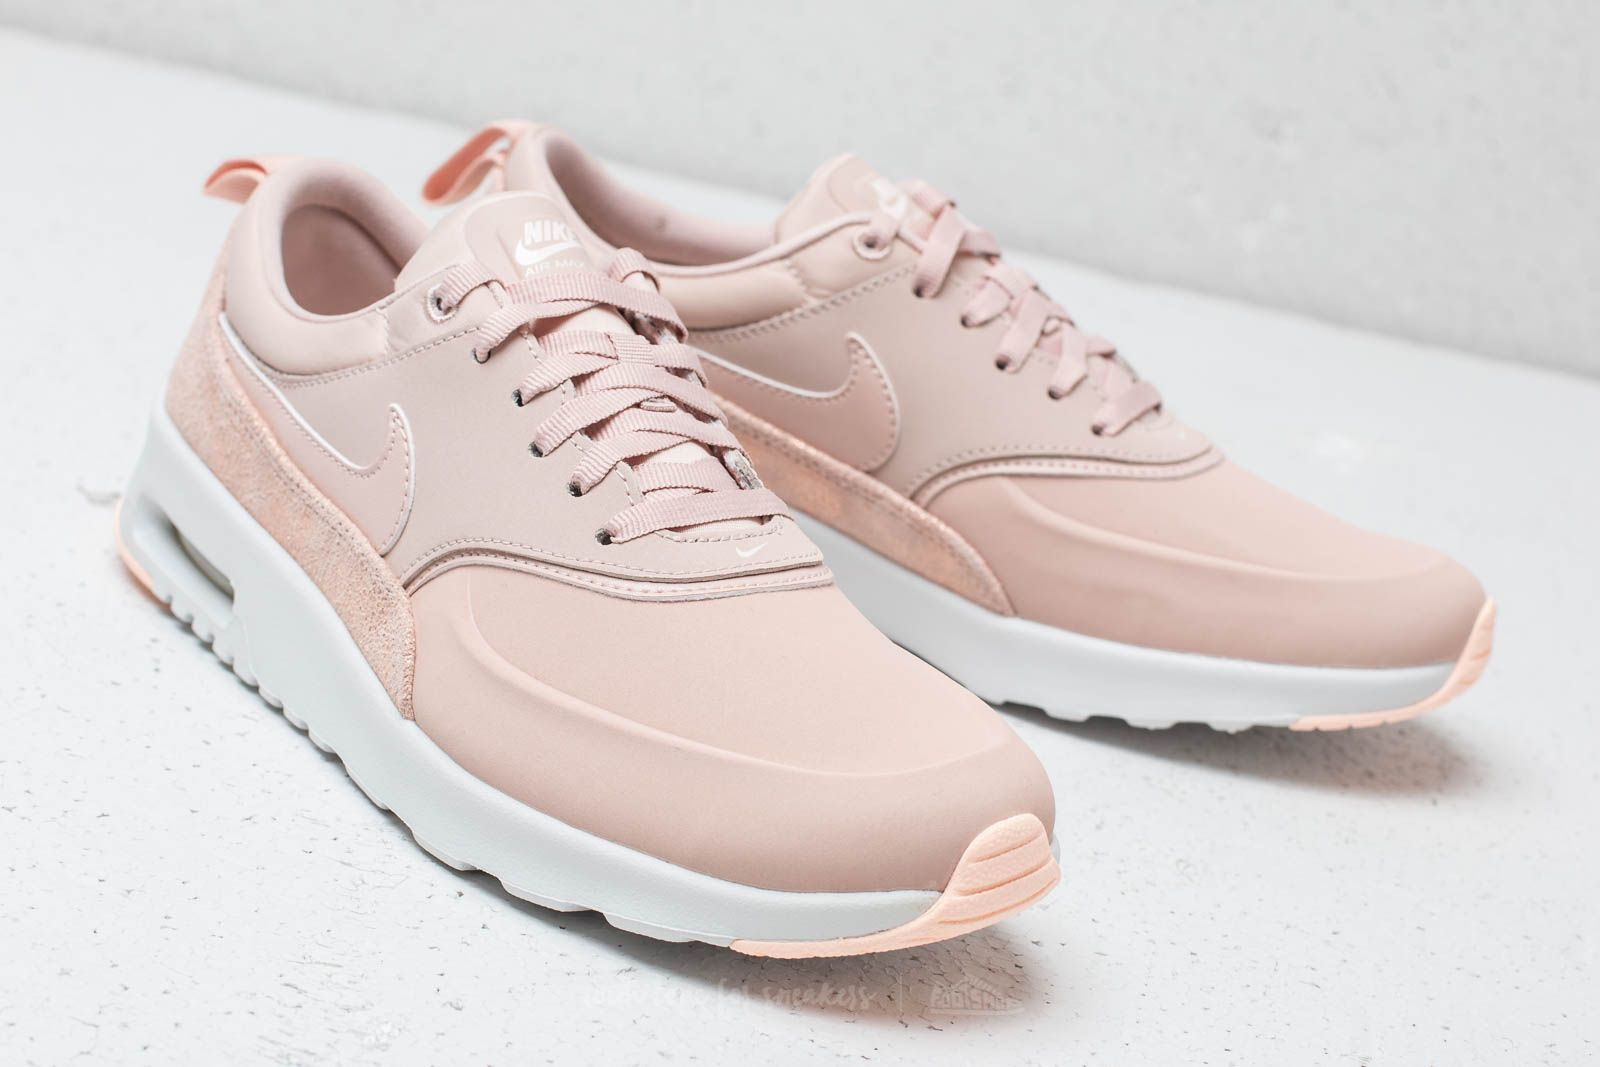 990dc3d36cf6 Nike Wmns Air Max Thea Premium Particle Beige  Particle Beige at a great  price 92